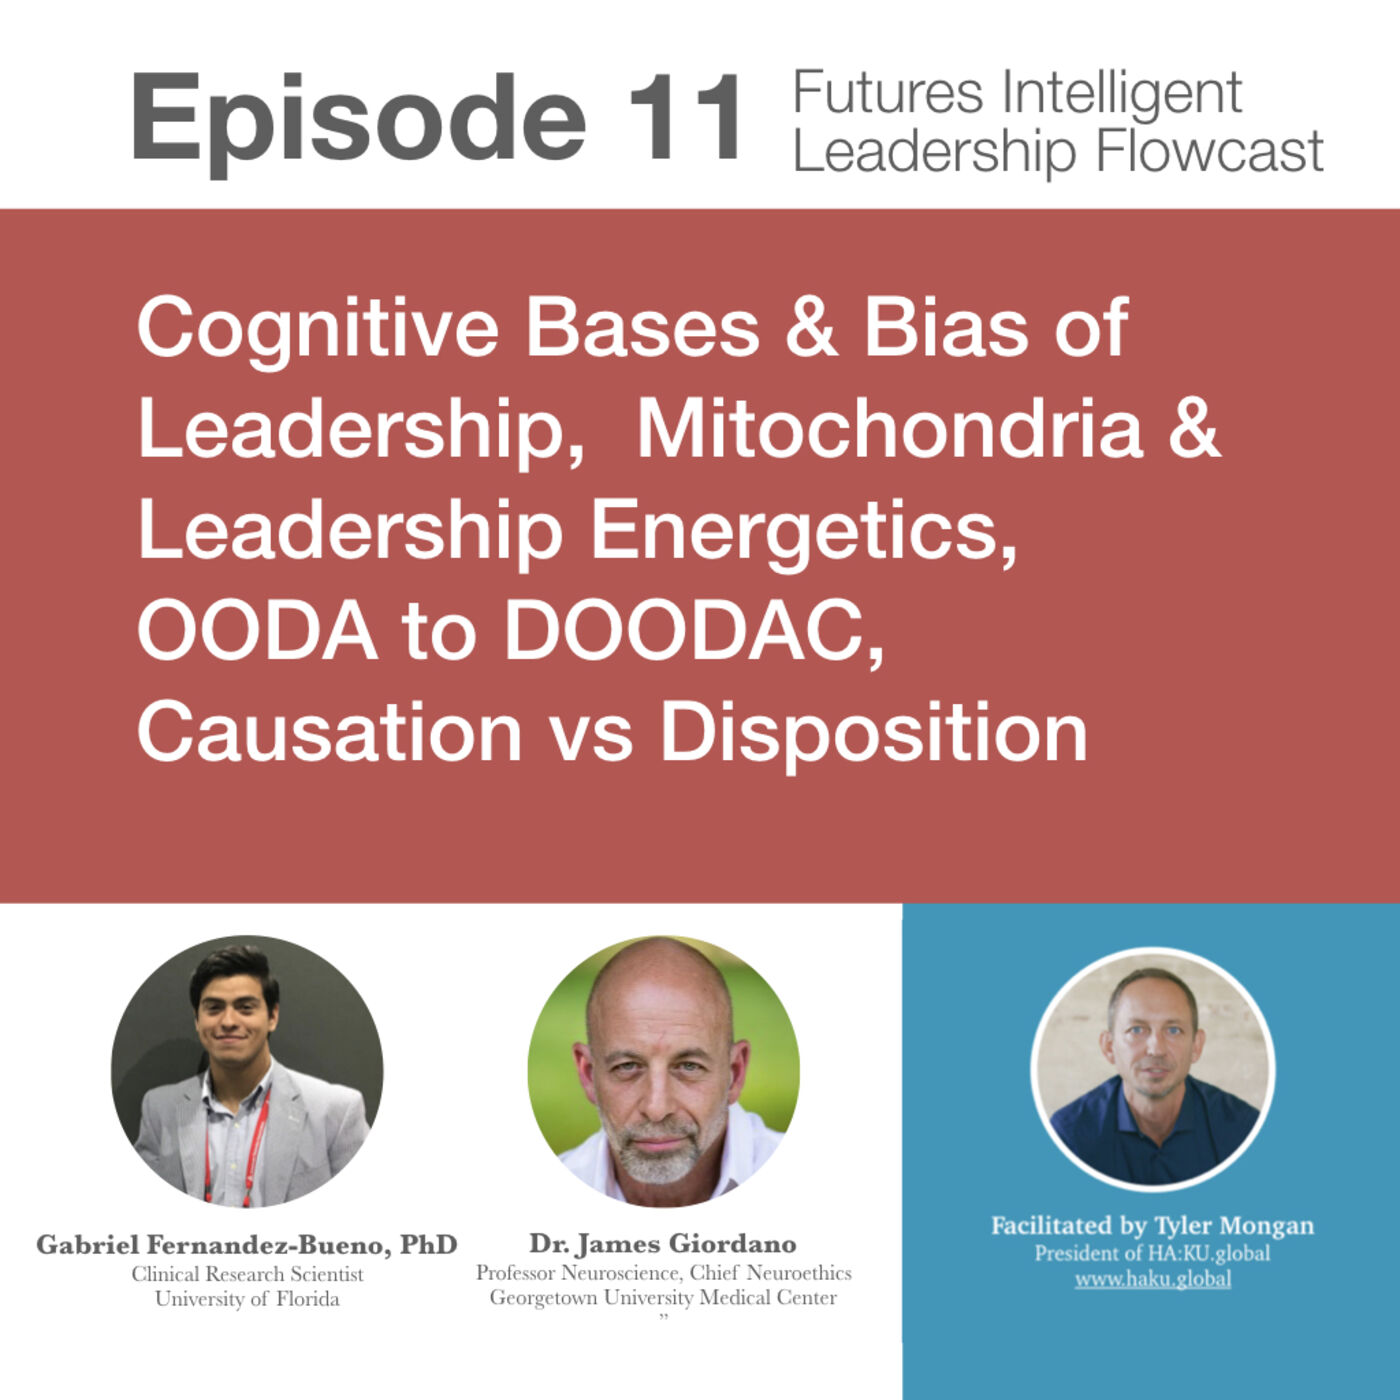 Episode 11: Cognitive Bases & Bias of Leadership, Mitochondria & Leadership Energetics, OODA to DOODAC, Causation vs Disposition